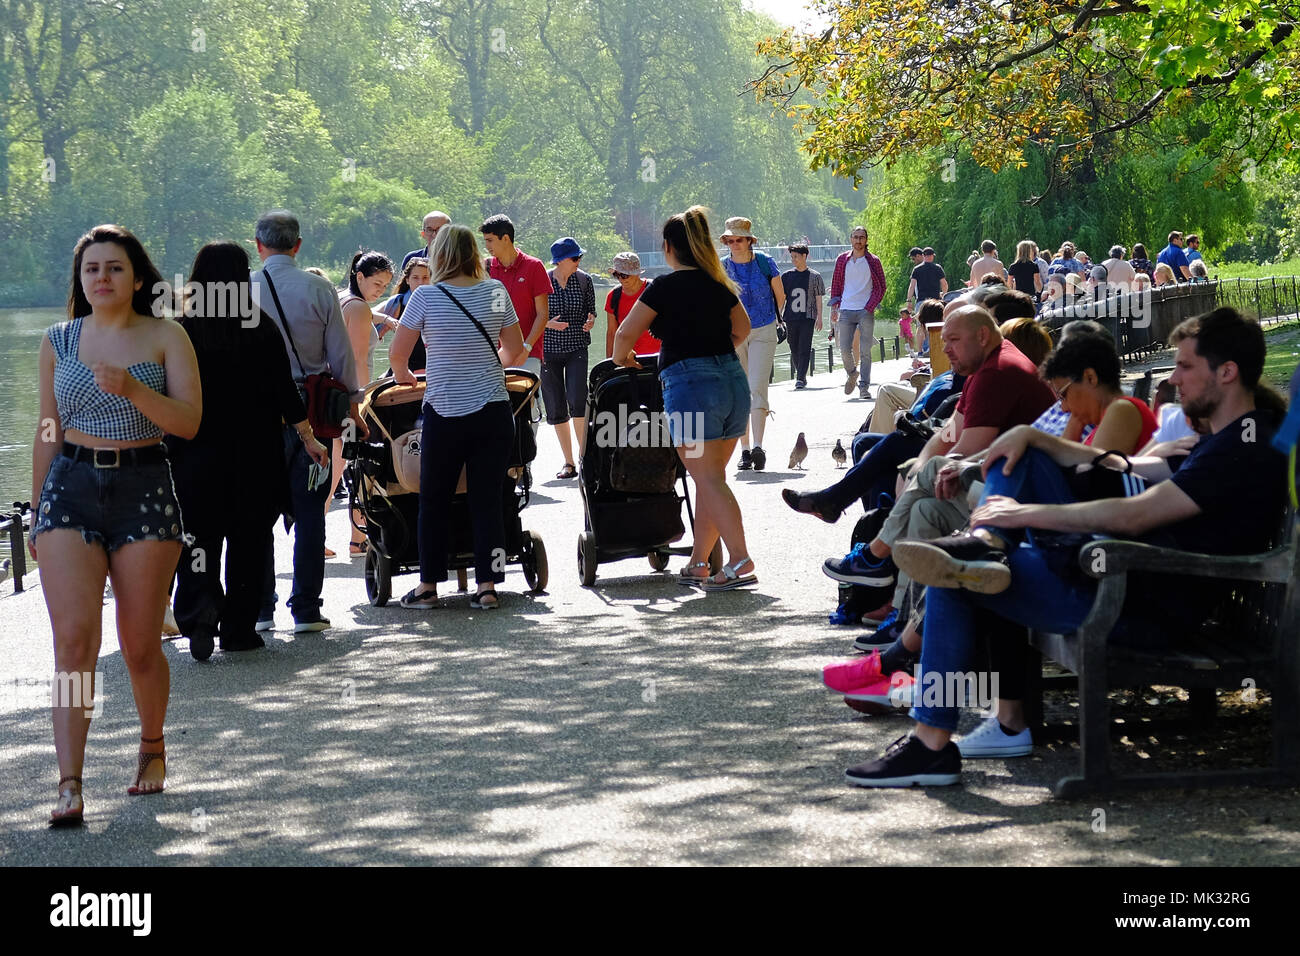 St. James Park, London, UK, 6th May, 2018.  London Weather. St. James Park is full of people enjoying the sun and warmth on this Bank Holiday Weekend. Credit: Judi Saunders/Alamy Live News - Stock Image